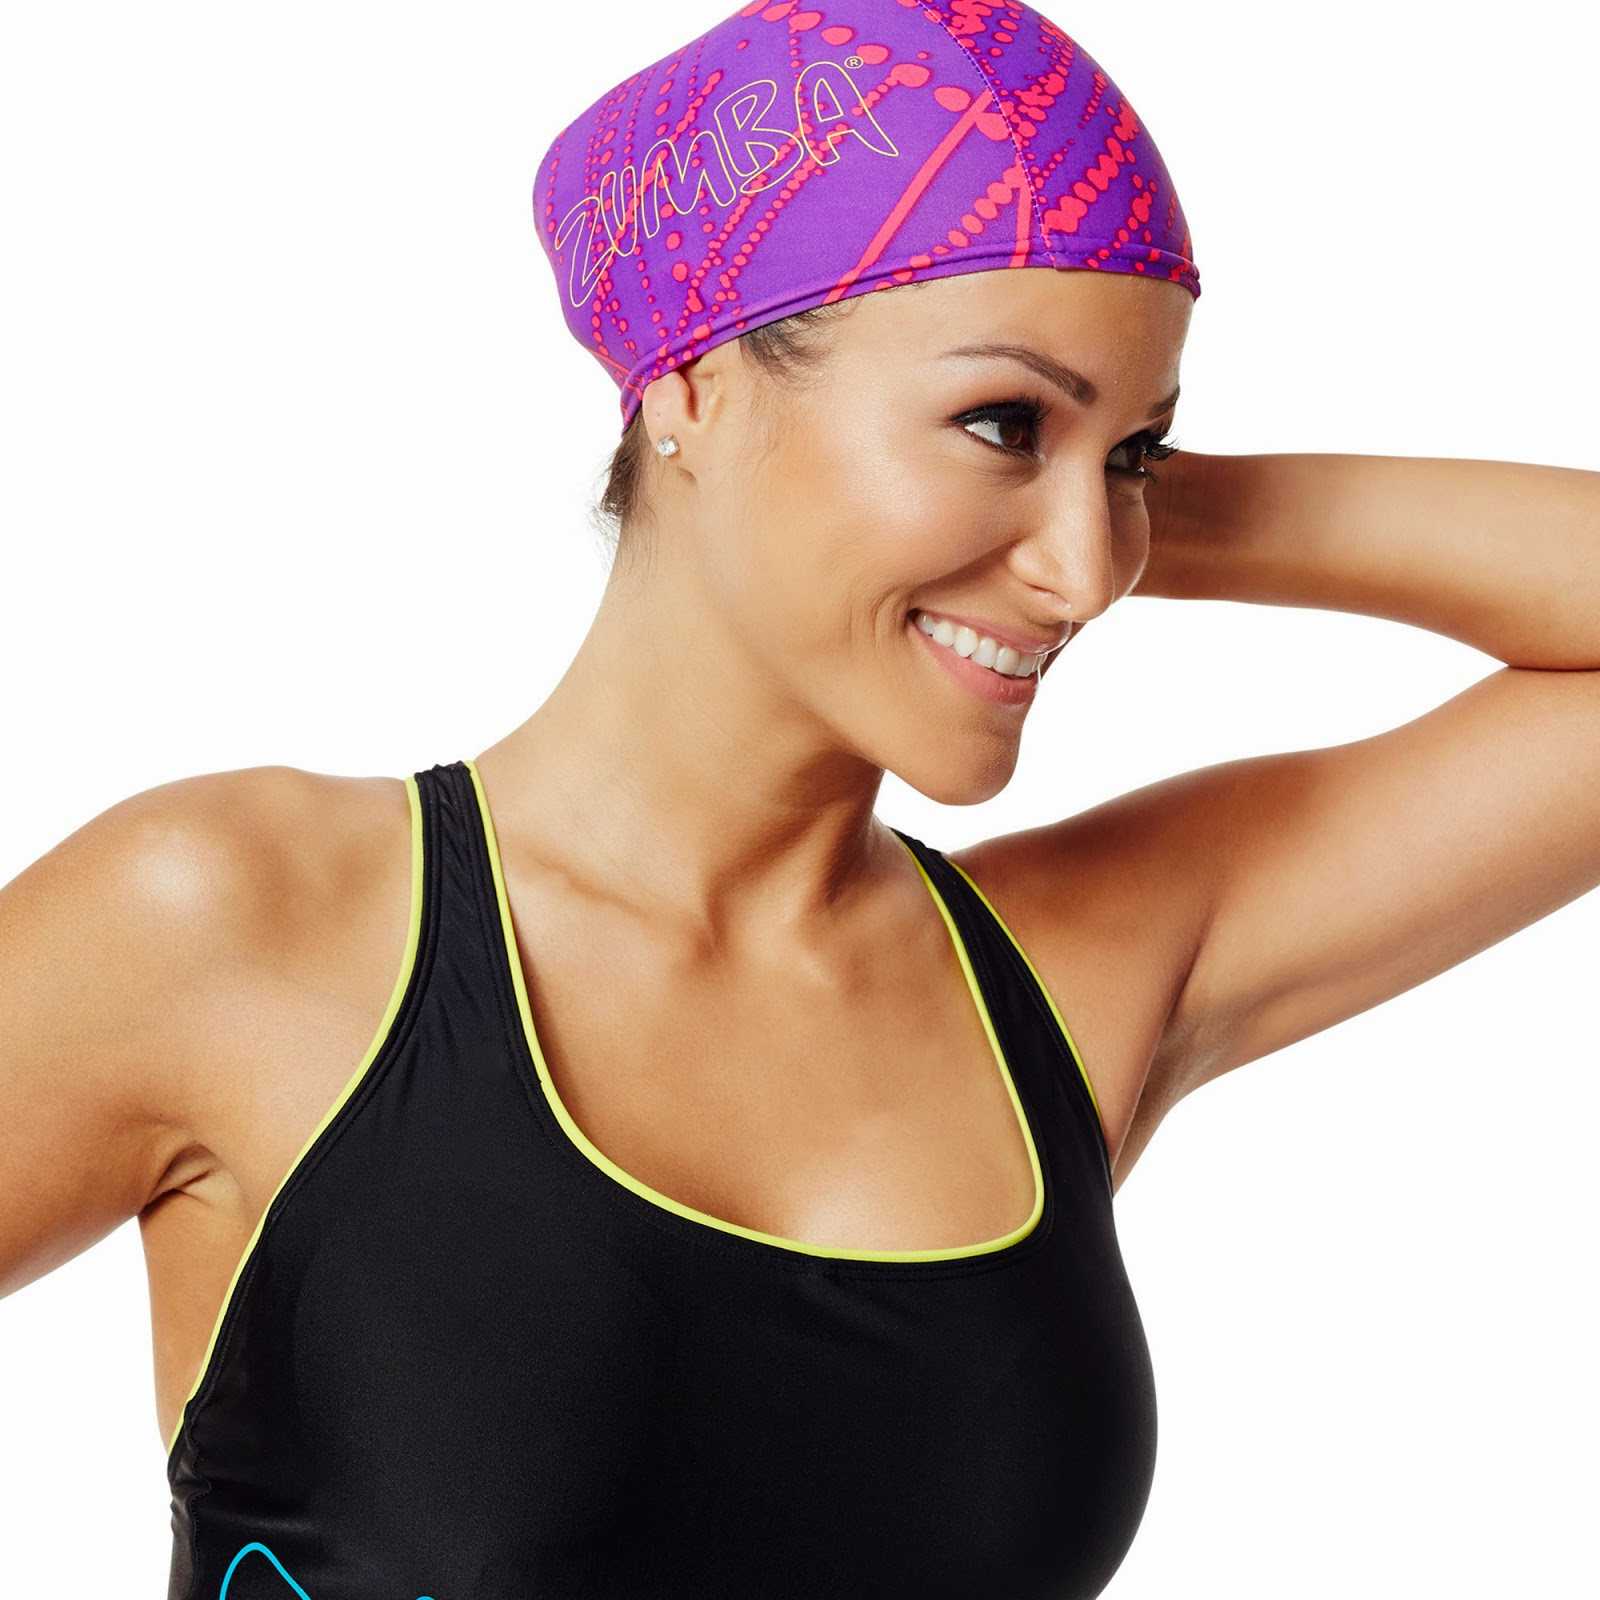 http://www.zumba.com/en-US/store-zin/US/product/soaked-in-glory-swim-cap?color=Vivid+Violet